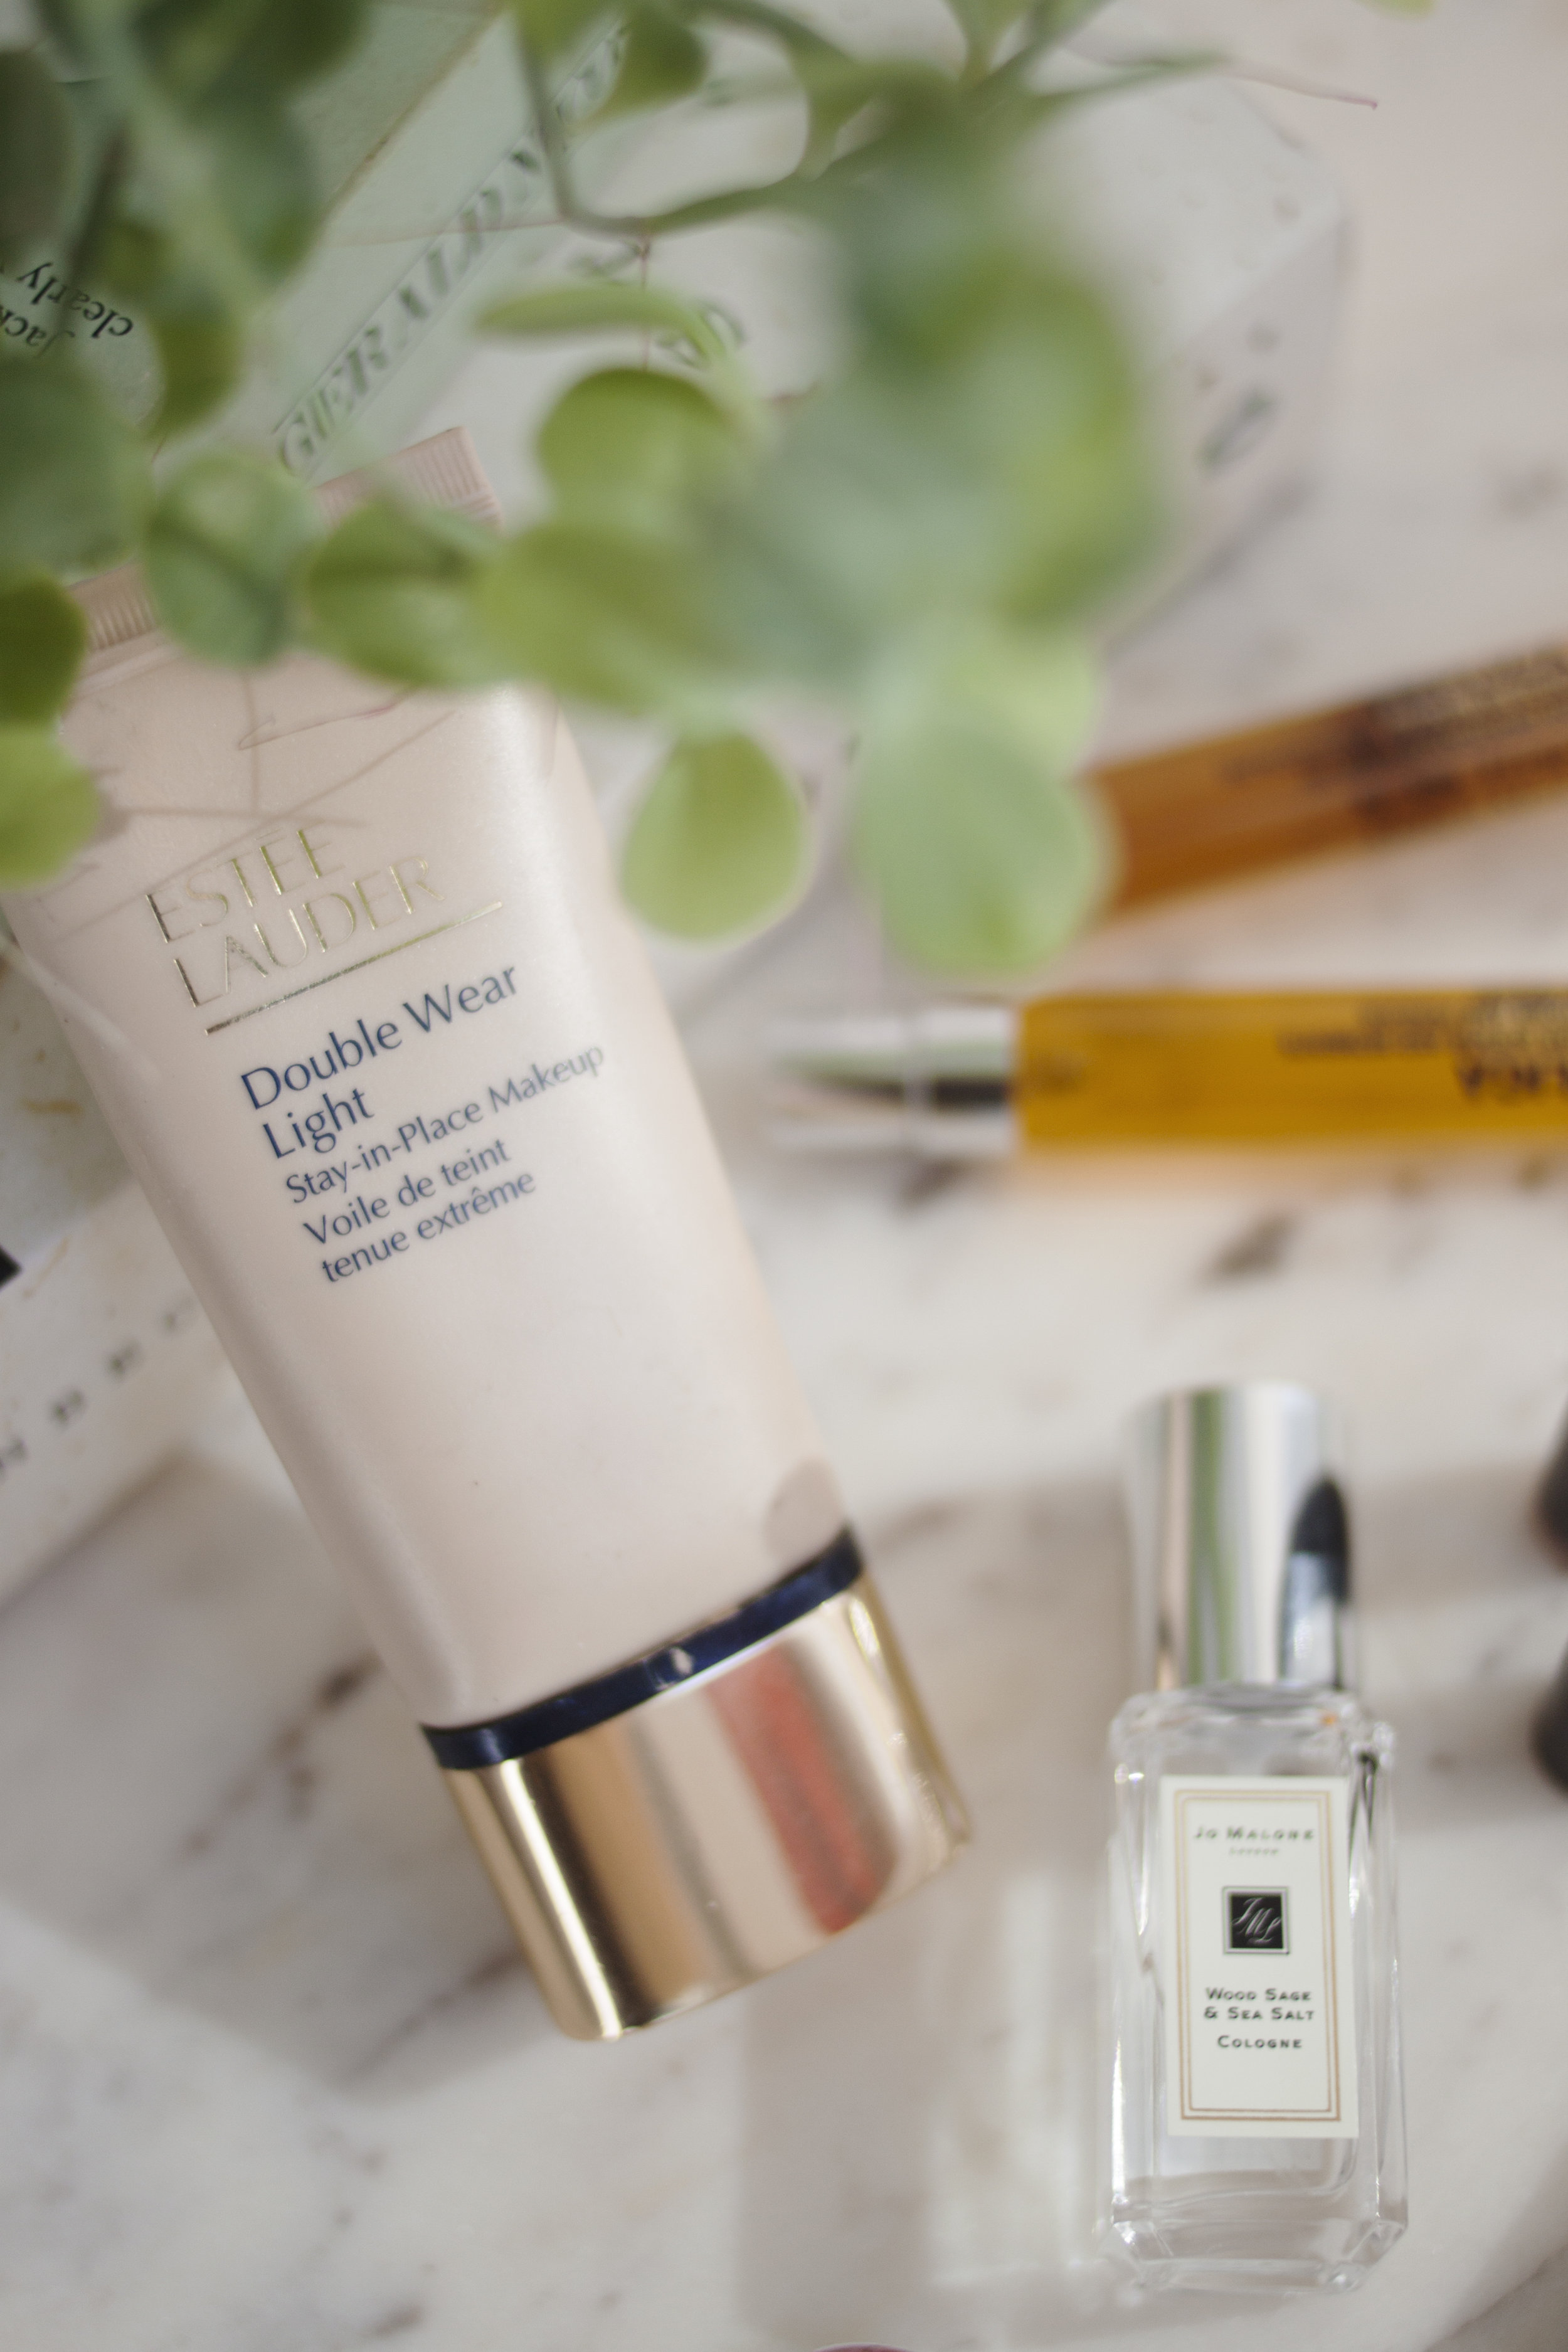 An Old Faithful Foundation - I don't think favourites always have to consist of new things you've just started using, sometimes old faithfuls get a lot of use and you realise how much you rely on them, so I decided the Estee Lauder Double Wear Light (AU) deserved another mention. I did recently mention this foundation in my post about products I'm using up and I've been making an effort to reach the end of this tube because I've got my next one ready to go, so I've been using it most days of the week and just wanted to reiterate how much I love the results. It has a really beautiful, skin-like satin finish, while still being really long-lasting, which is a very hard combination to find. I think this would be a winner regardless of skin type, but if you've got oily skin but don't want anything too matte or full coverage, then this is definitely one to go for.I've also been really enjoying using a sponge to apply my foundation lately. I've never been one of those Beauty Blender obsessives, but I do go through phases of using a sponge over a brush, and lately that's what I've been doing. I've also started playing around with where I apply my foundation too. Instead of automatically applying it all over my face and blending, I've started to focus on the centre of my face first and blending the product outwards from there. Not only do I use less product because actually, the edges of my face don't really need any coverage, but it looks really natural because there's some real skin on show. Plus you'll never end up with that foundation line around your face, which is always something I try and avoid!